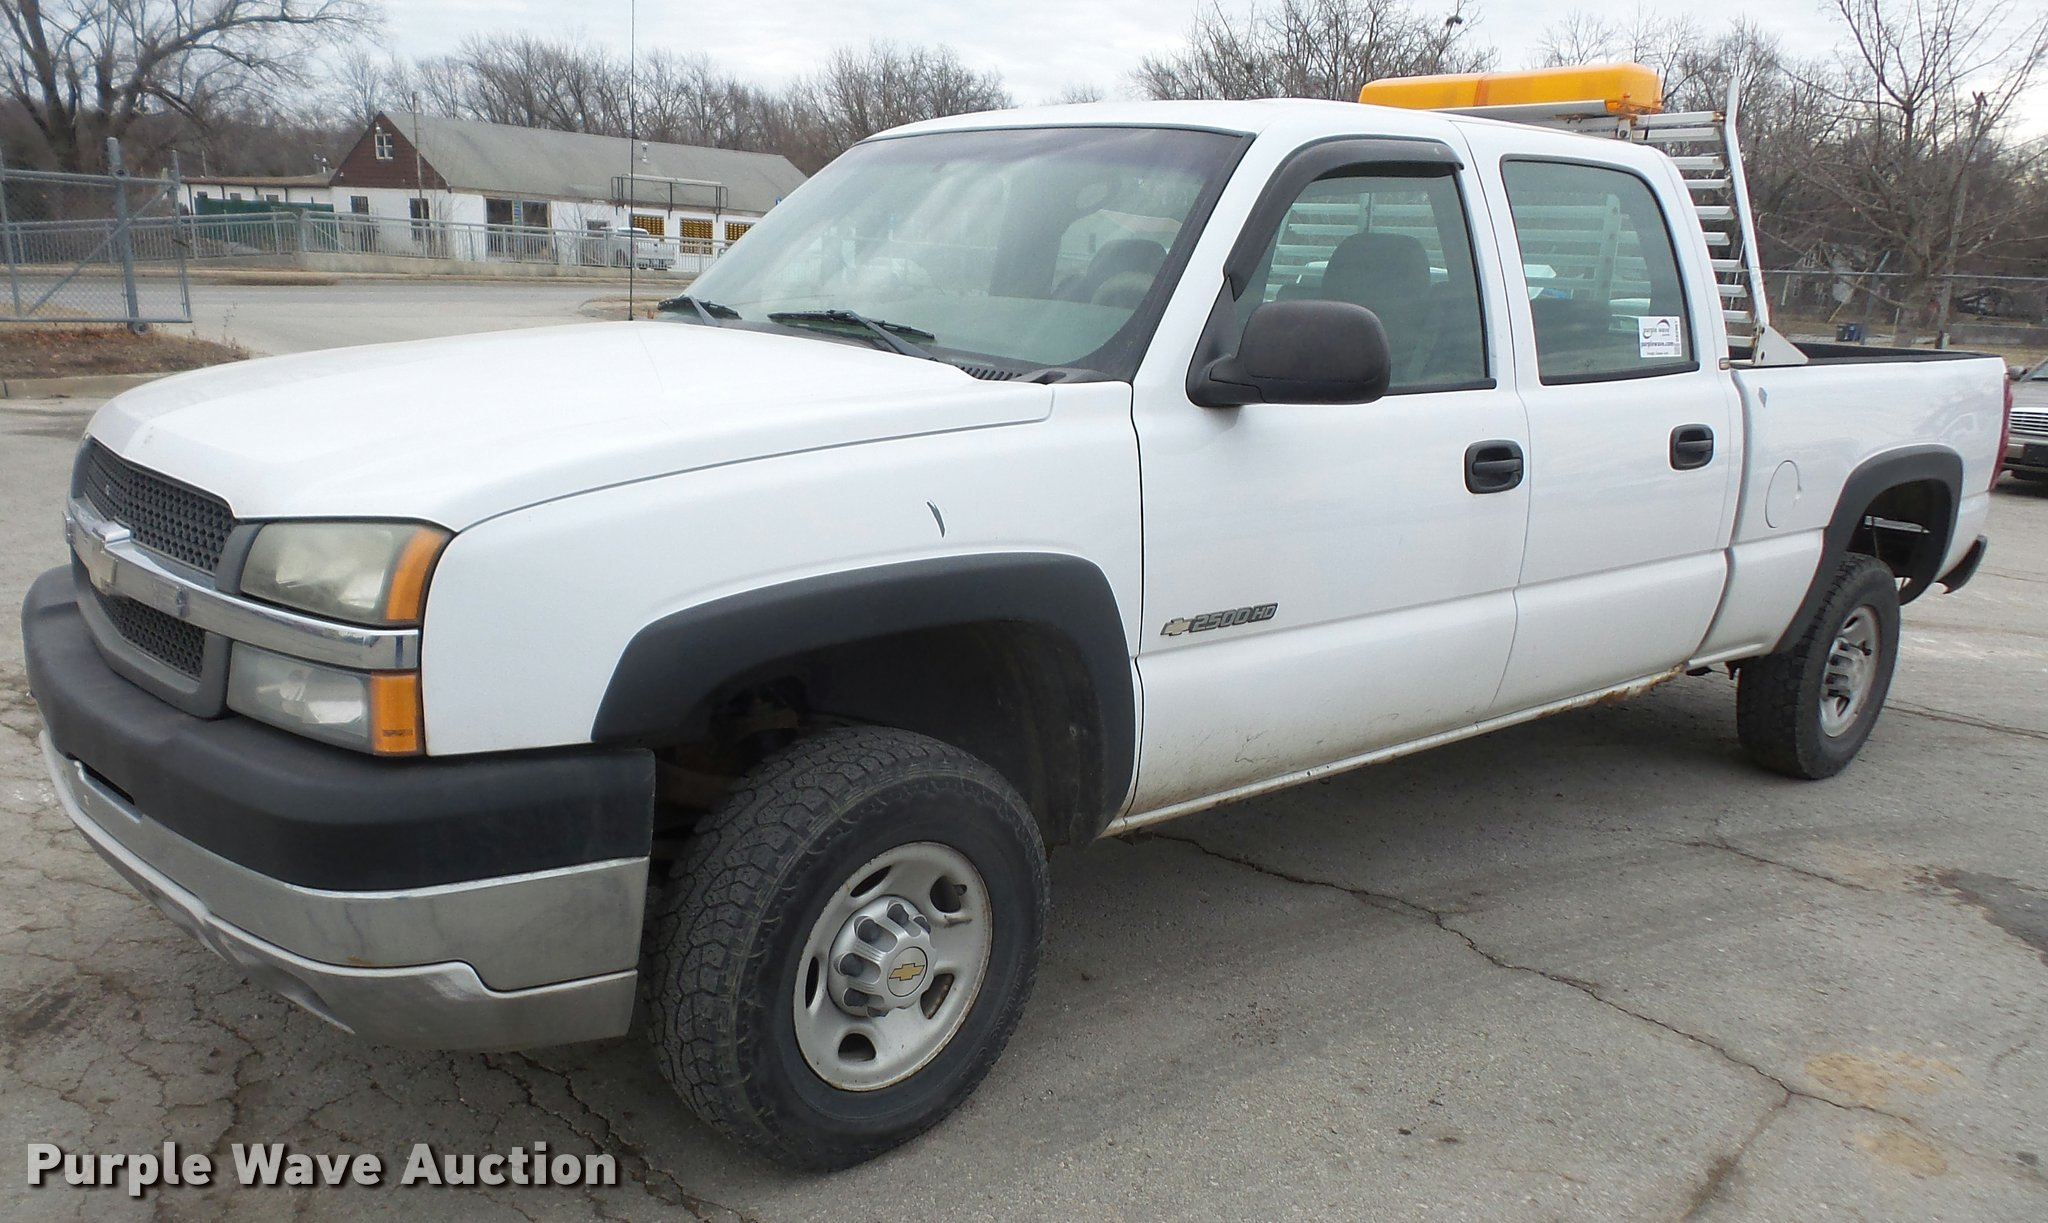 bed truck for item auction chevrolet utility i pickup silverado image